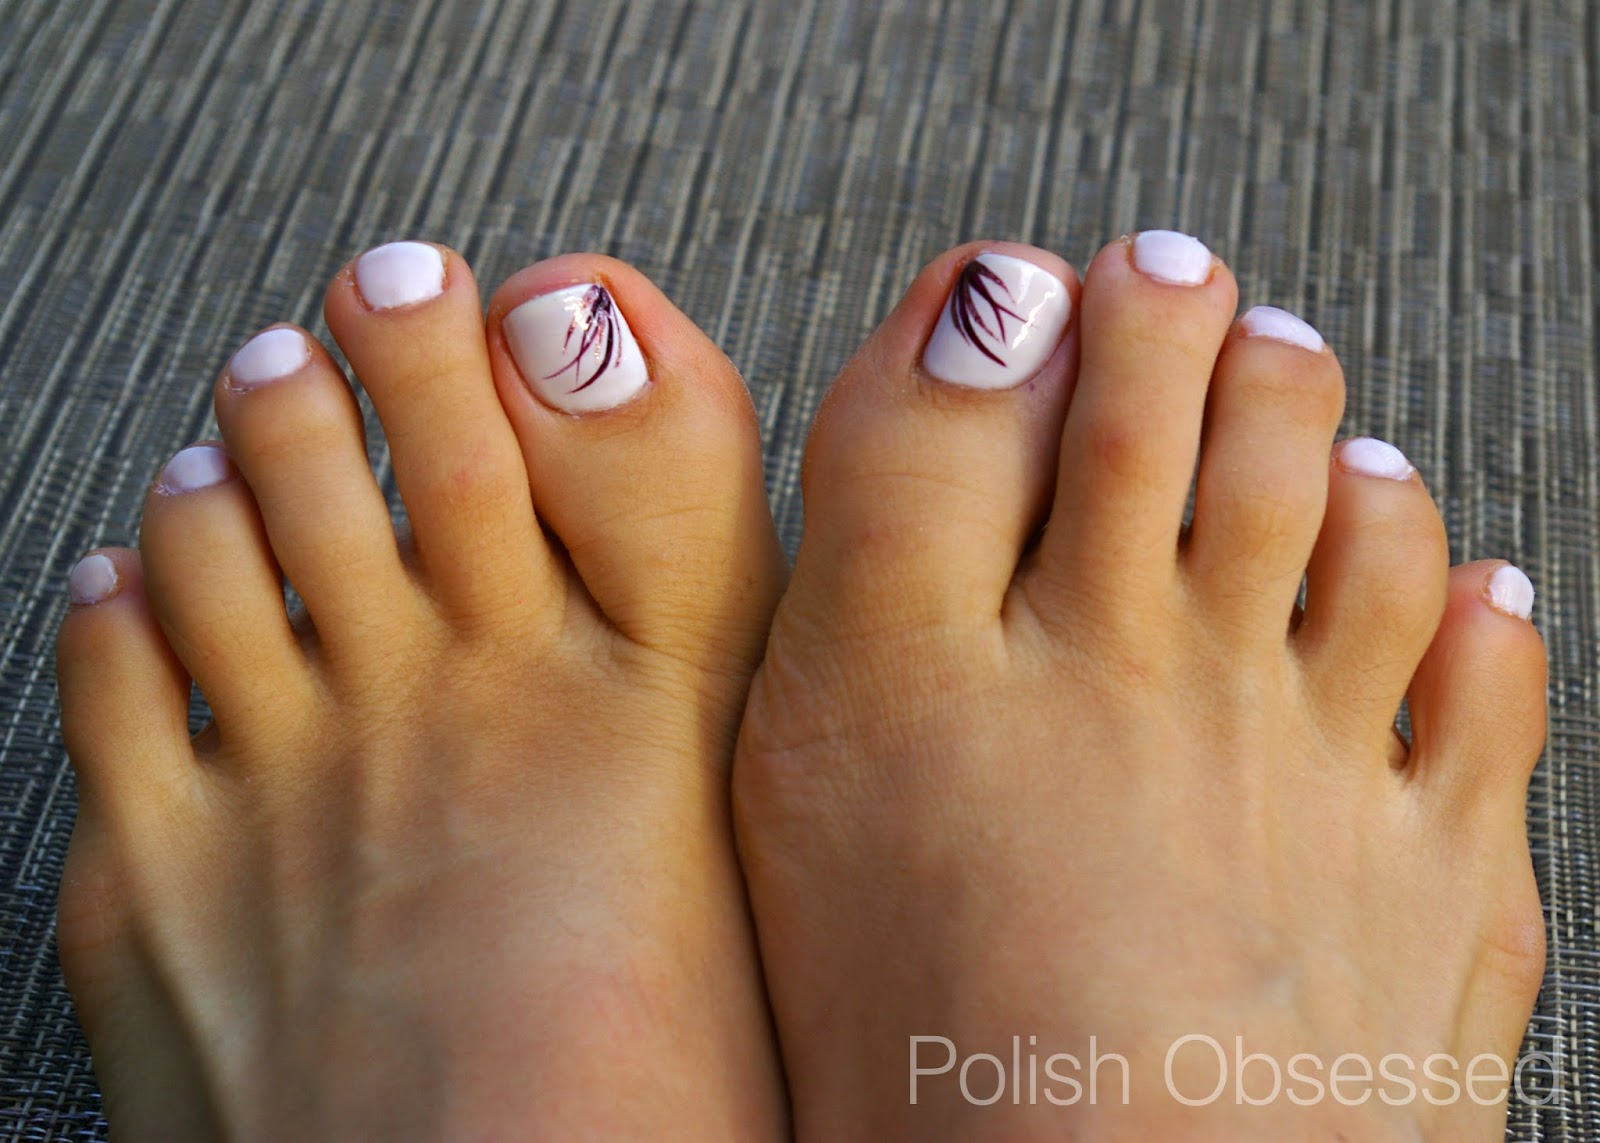 Polish Obsessed: Funny Bunny